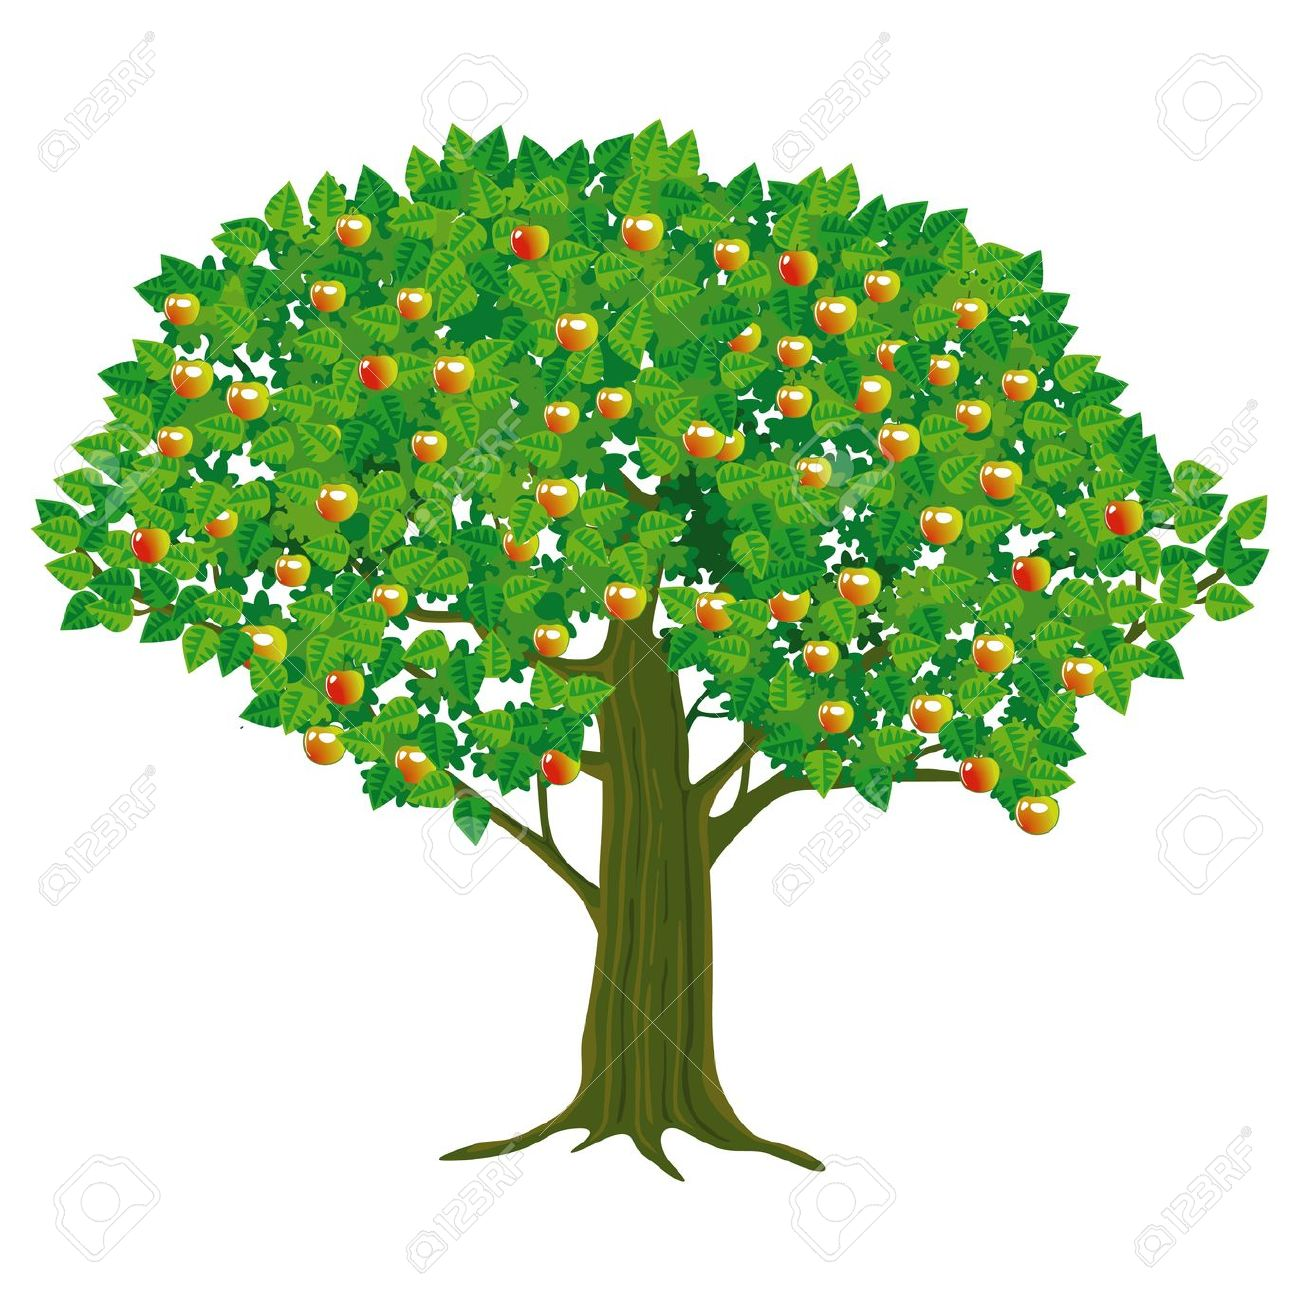 Apple tree without fruit clipart.